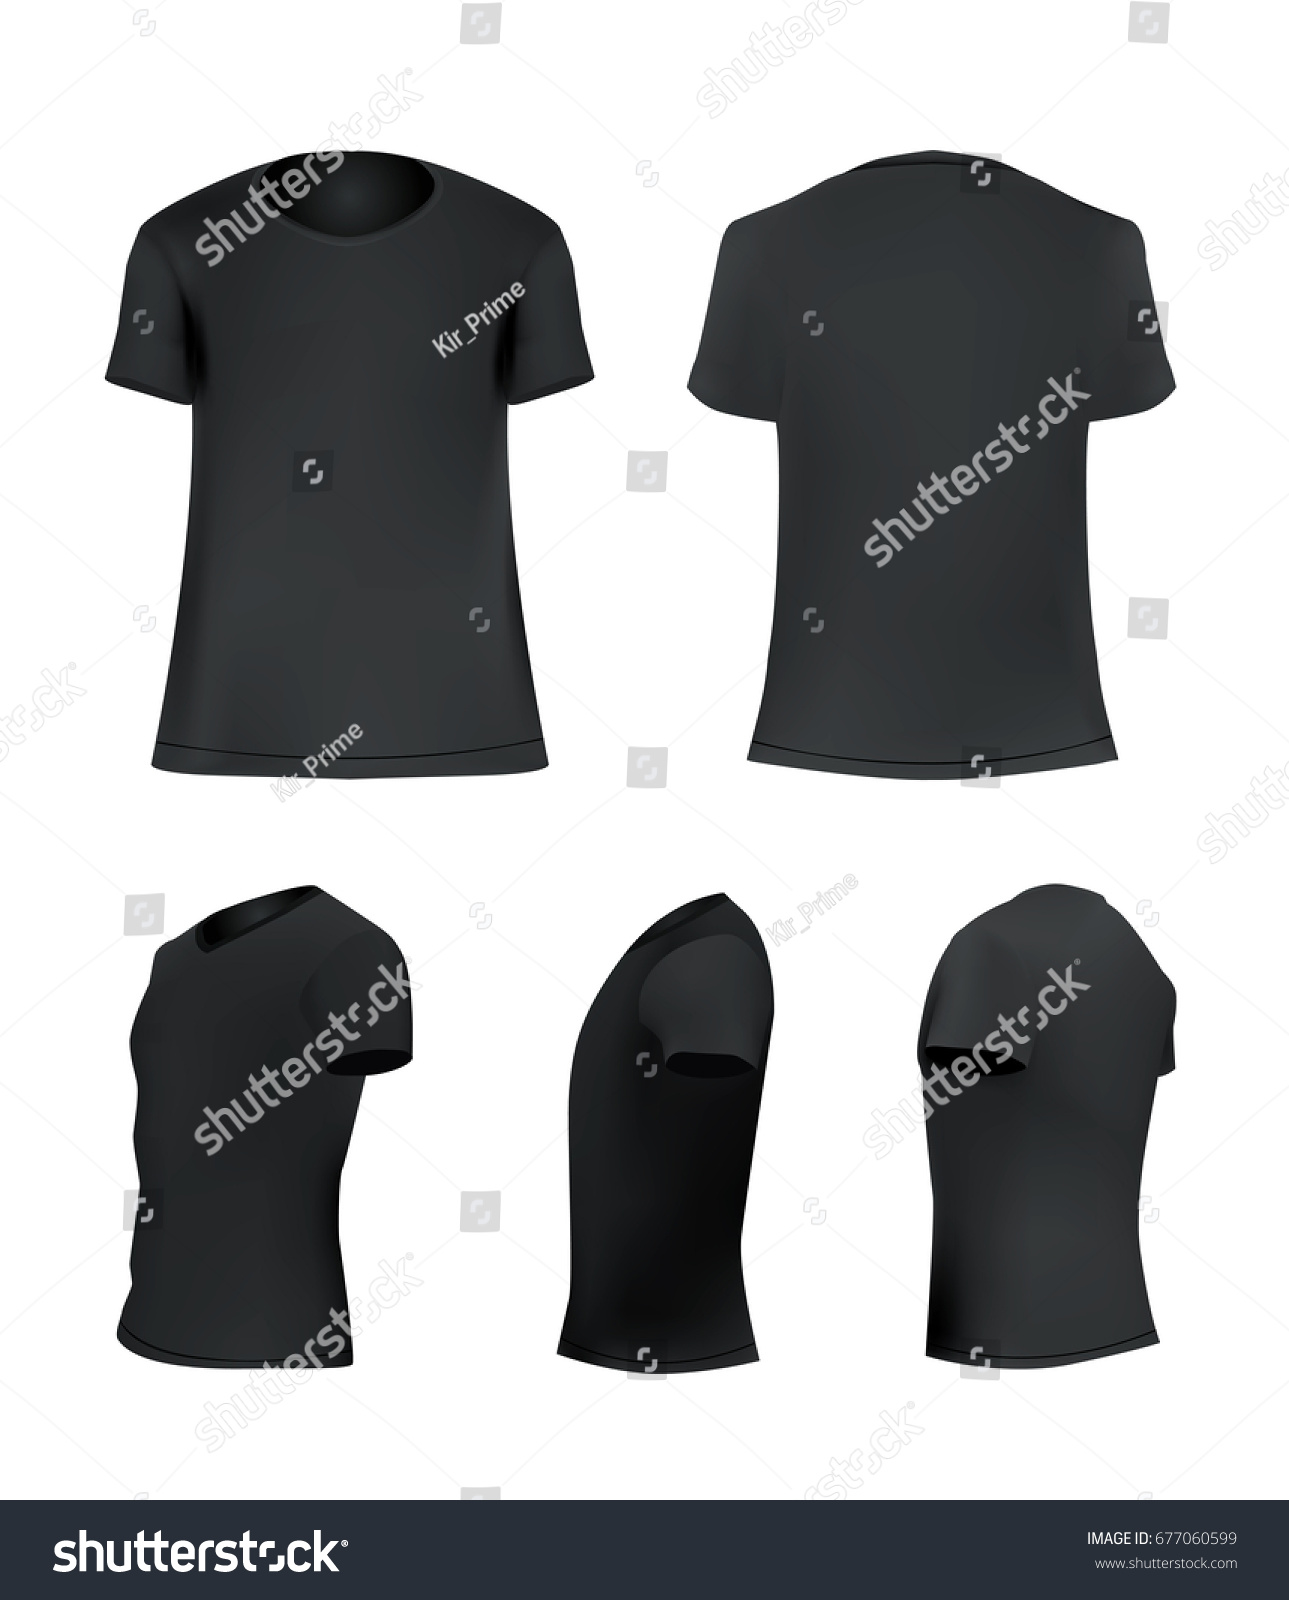 Black t shirt model template - Black T Shirt Template Set Blank Shirt Front Side Perspective Rear